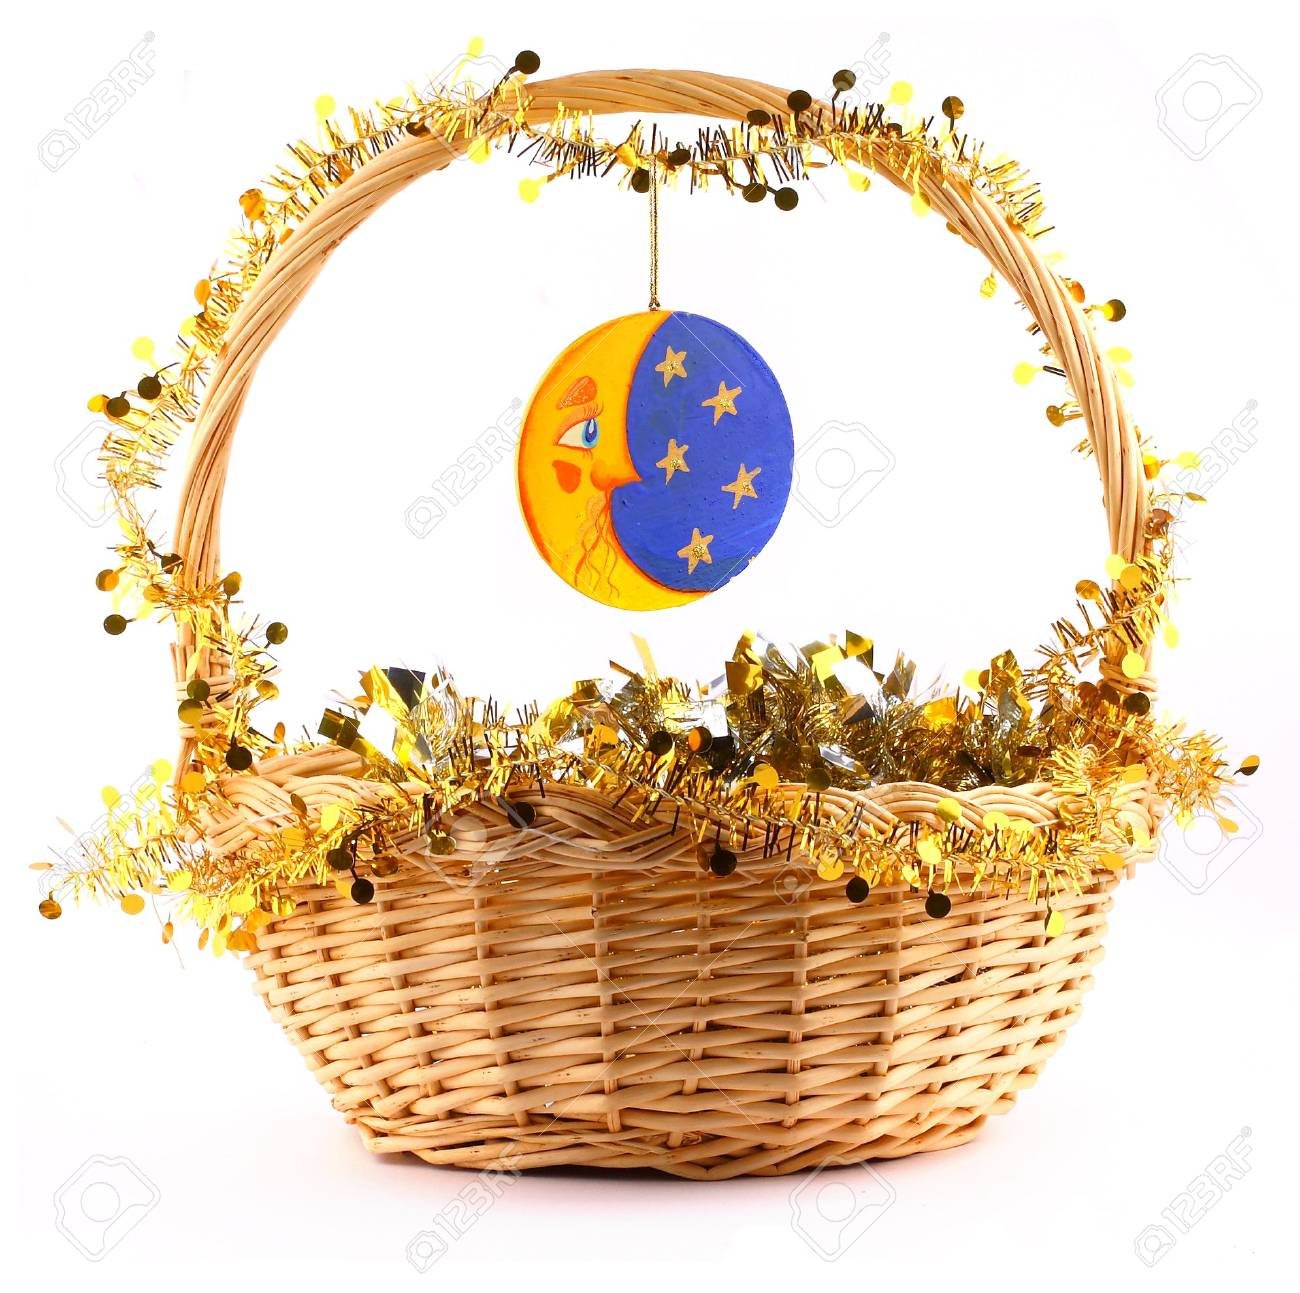 wooden moon attached to string to the present basket witha a gold garland Stock Photo - 2051750